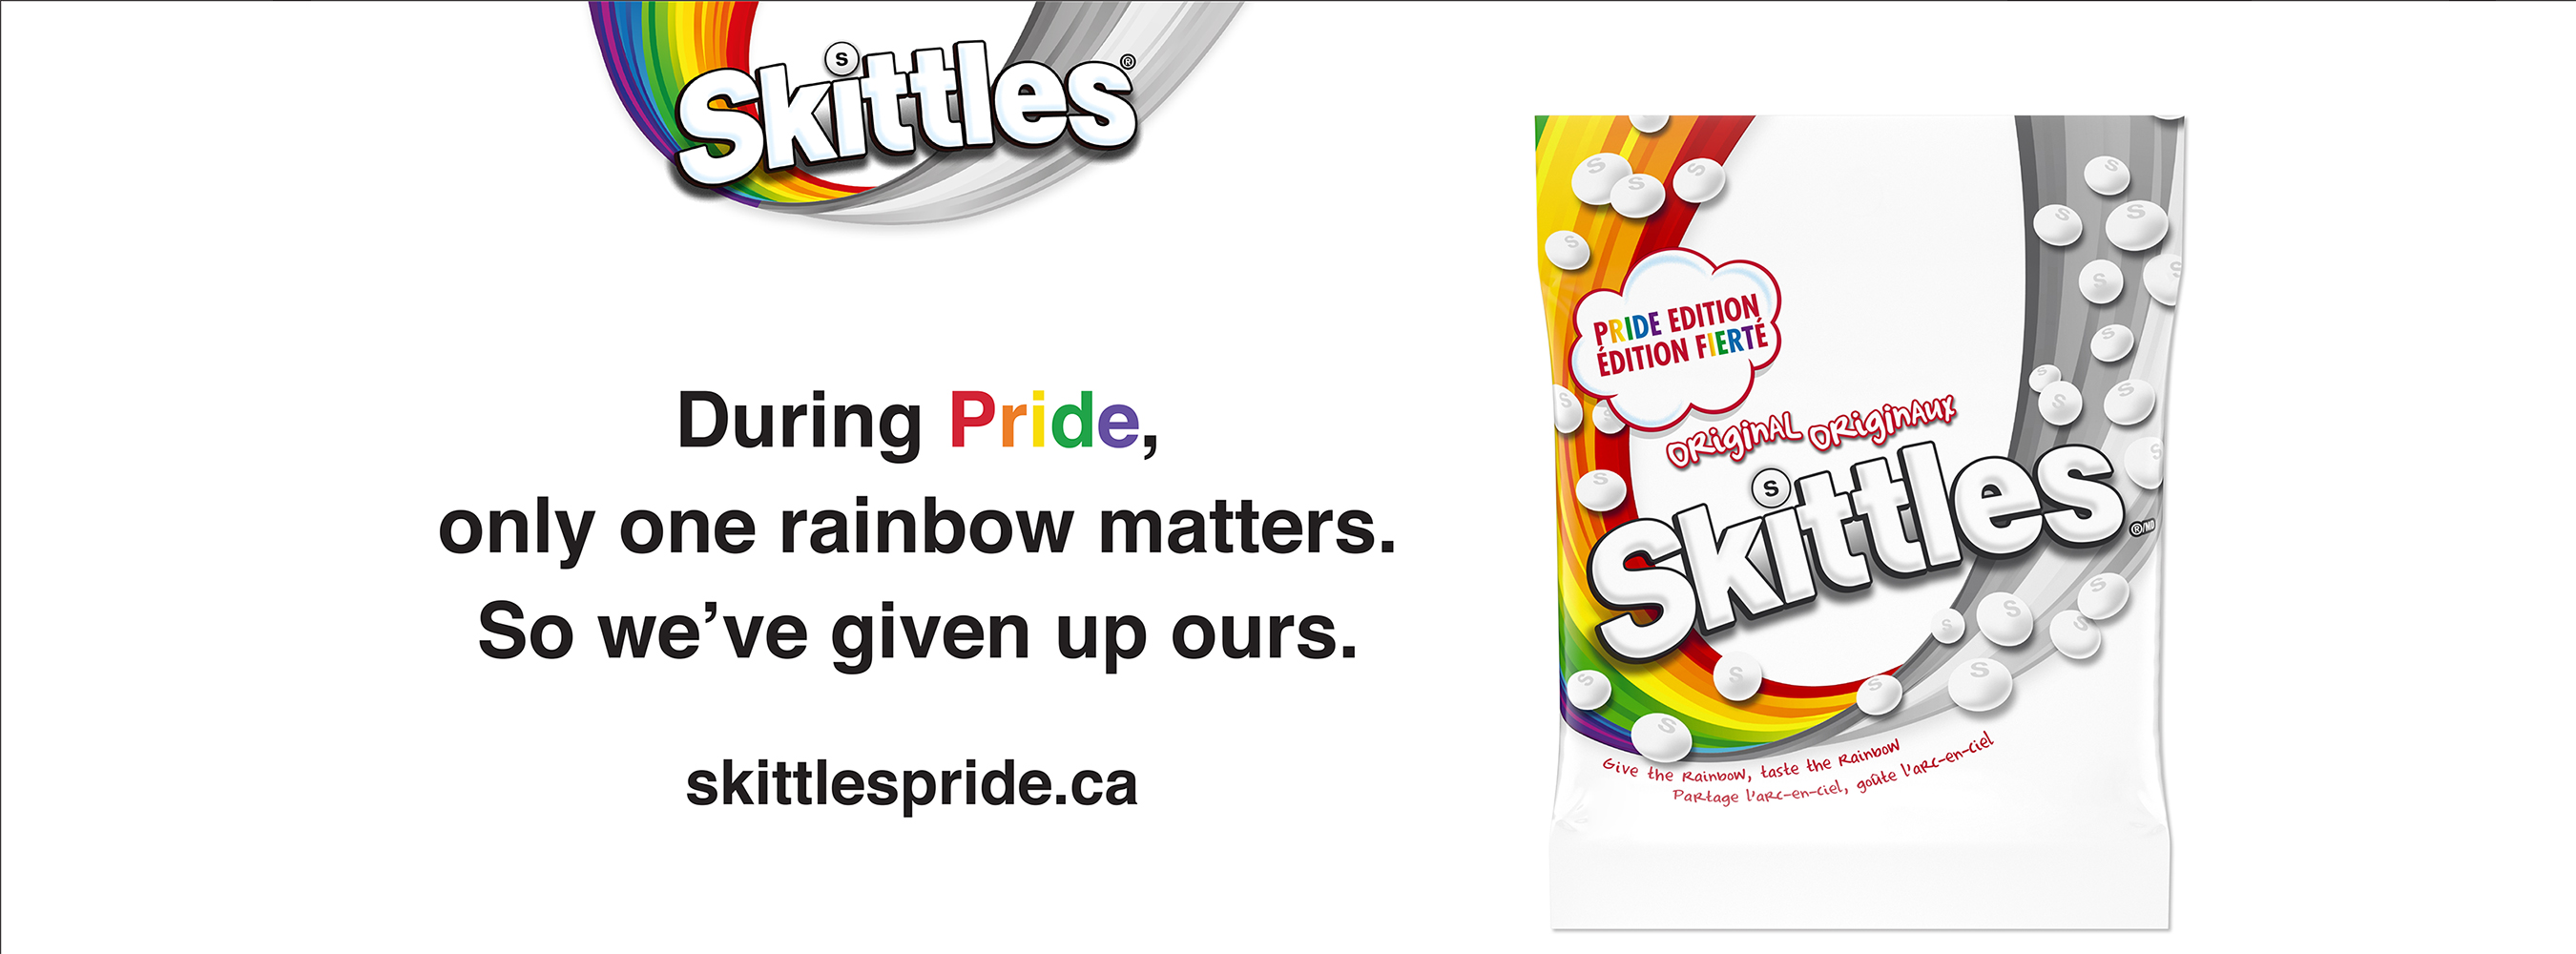 Banner image for Skittle Pride campaign